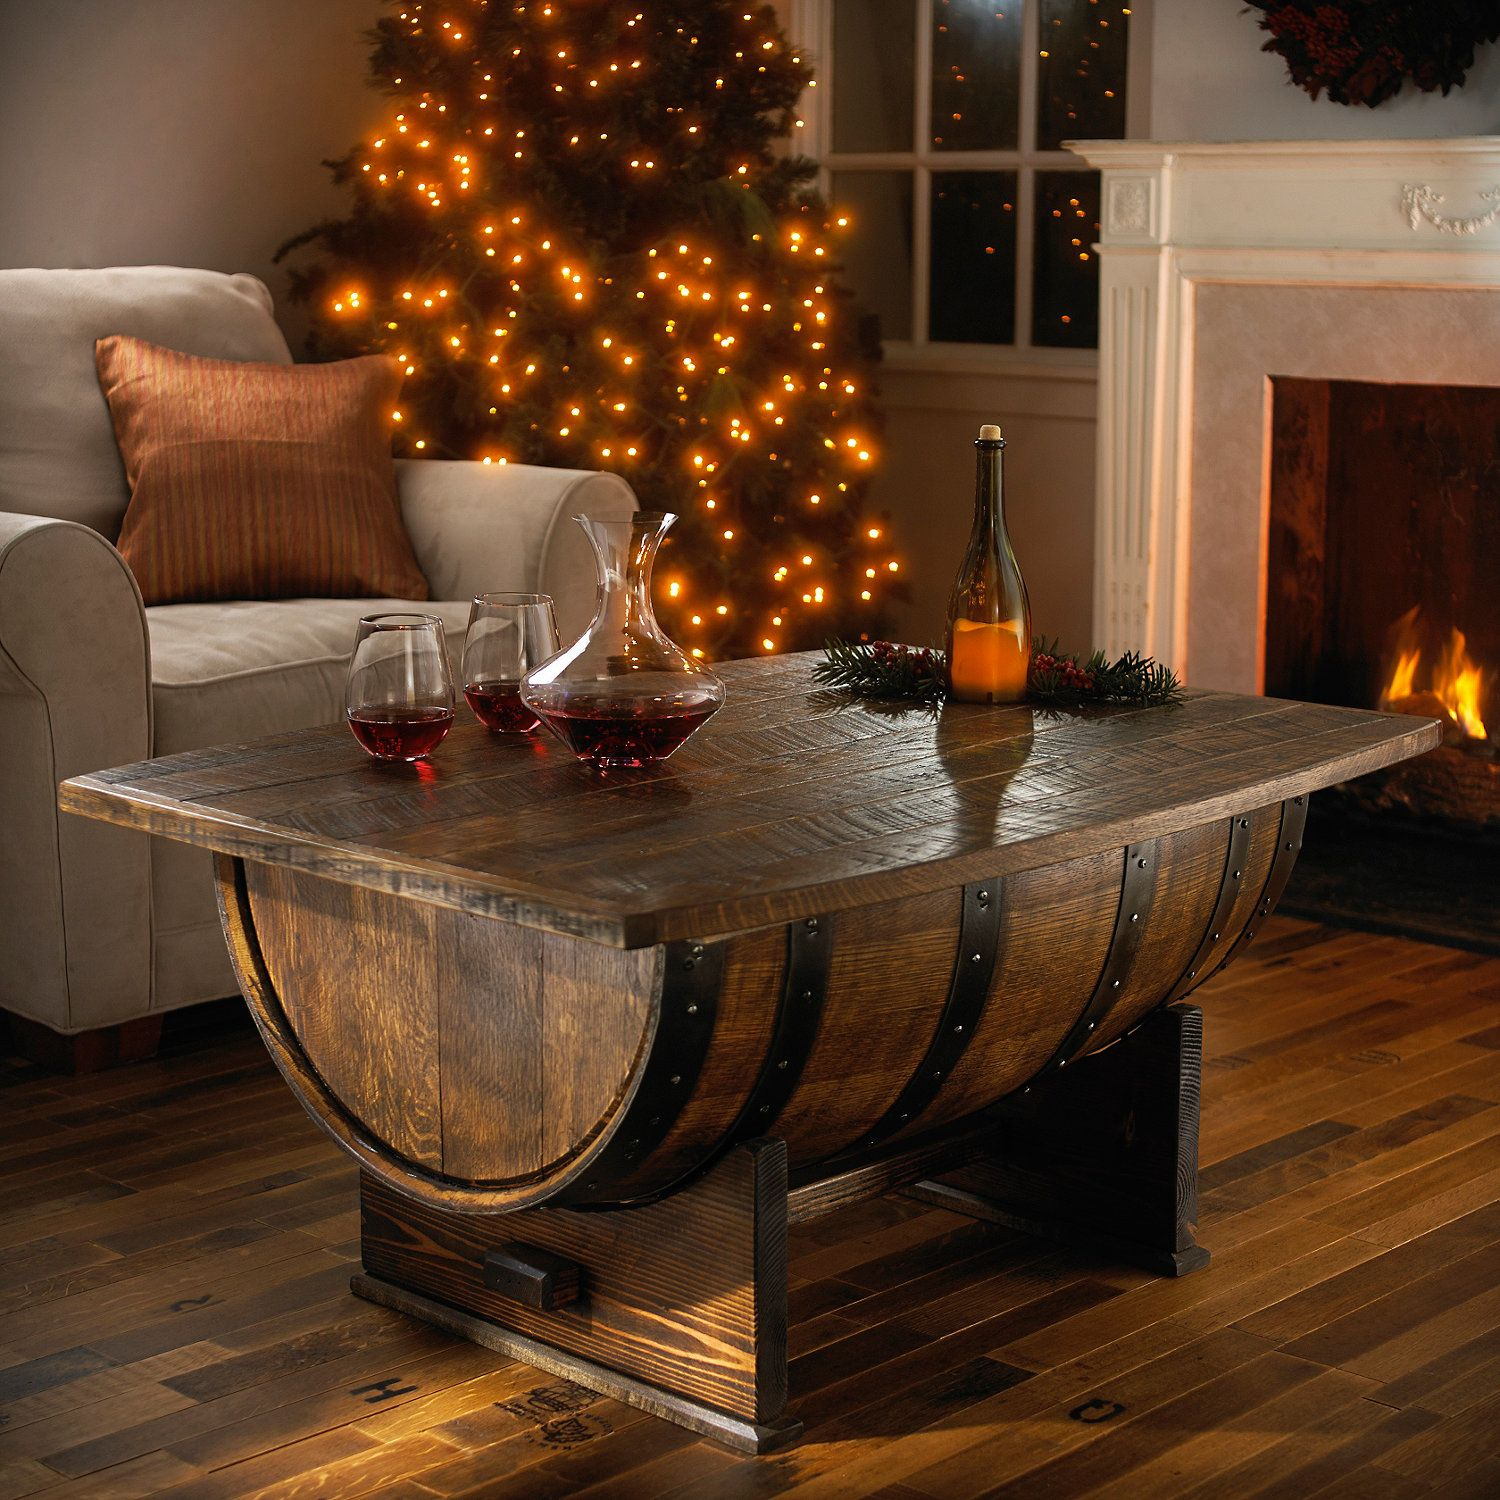 Handmade Oak Whiskey Barrel Coffee Table Wine Enthusiast DIY